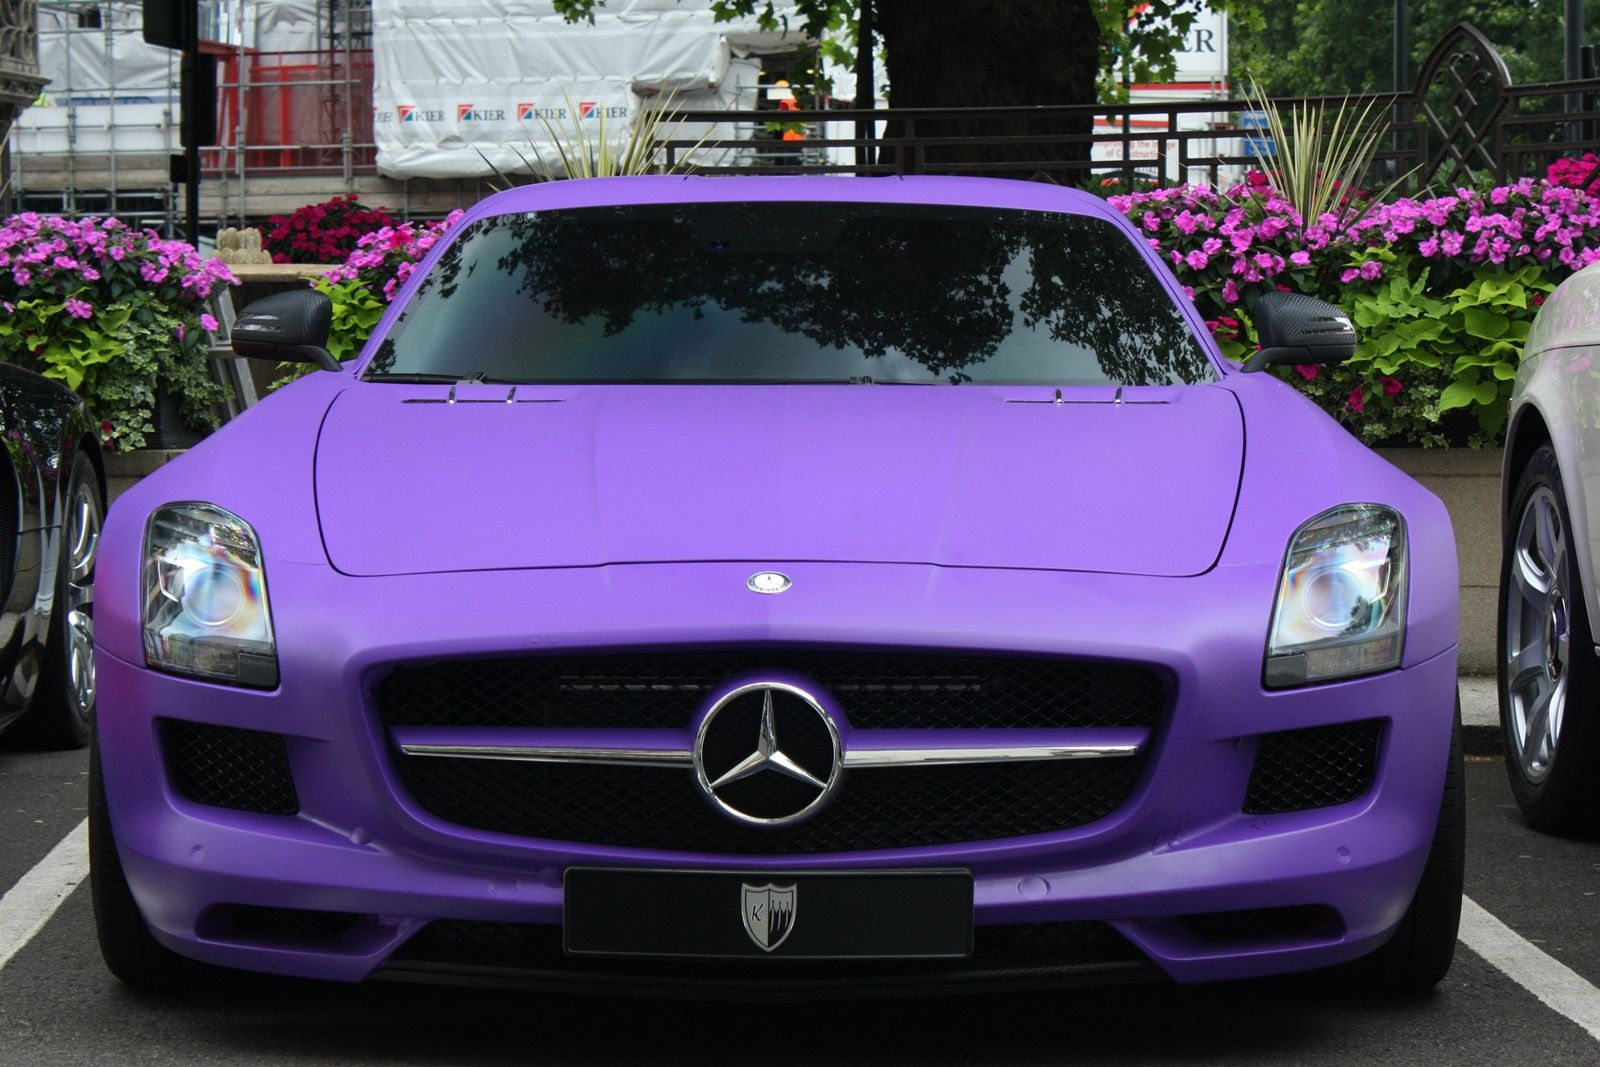 Mercedes Benz Sls Amg Matte Purple Only Cars And Cars